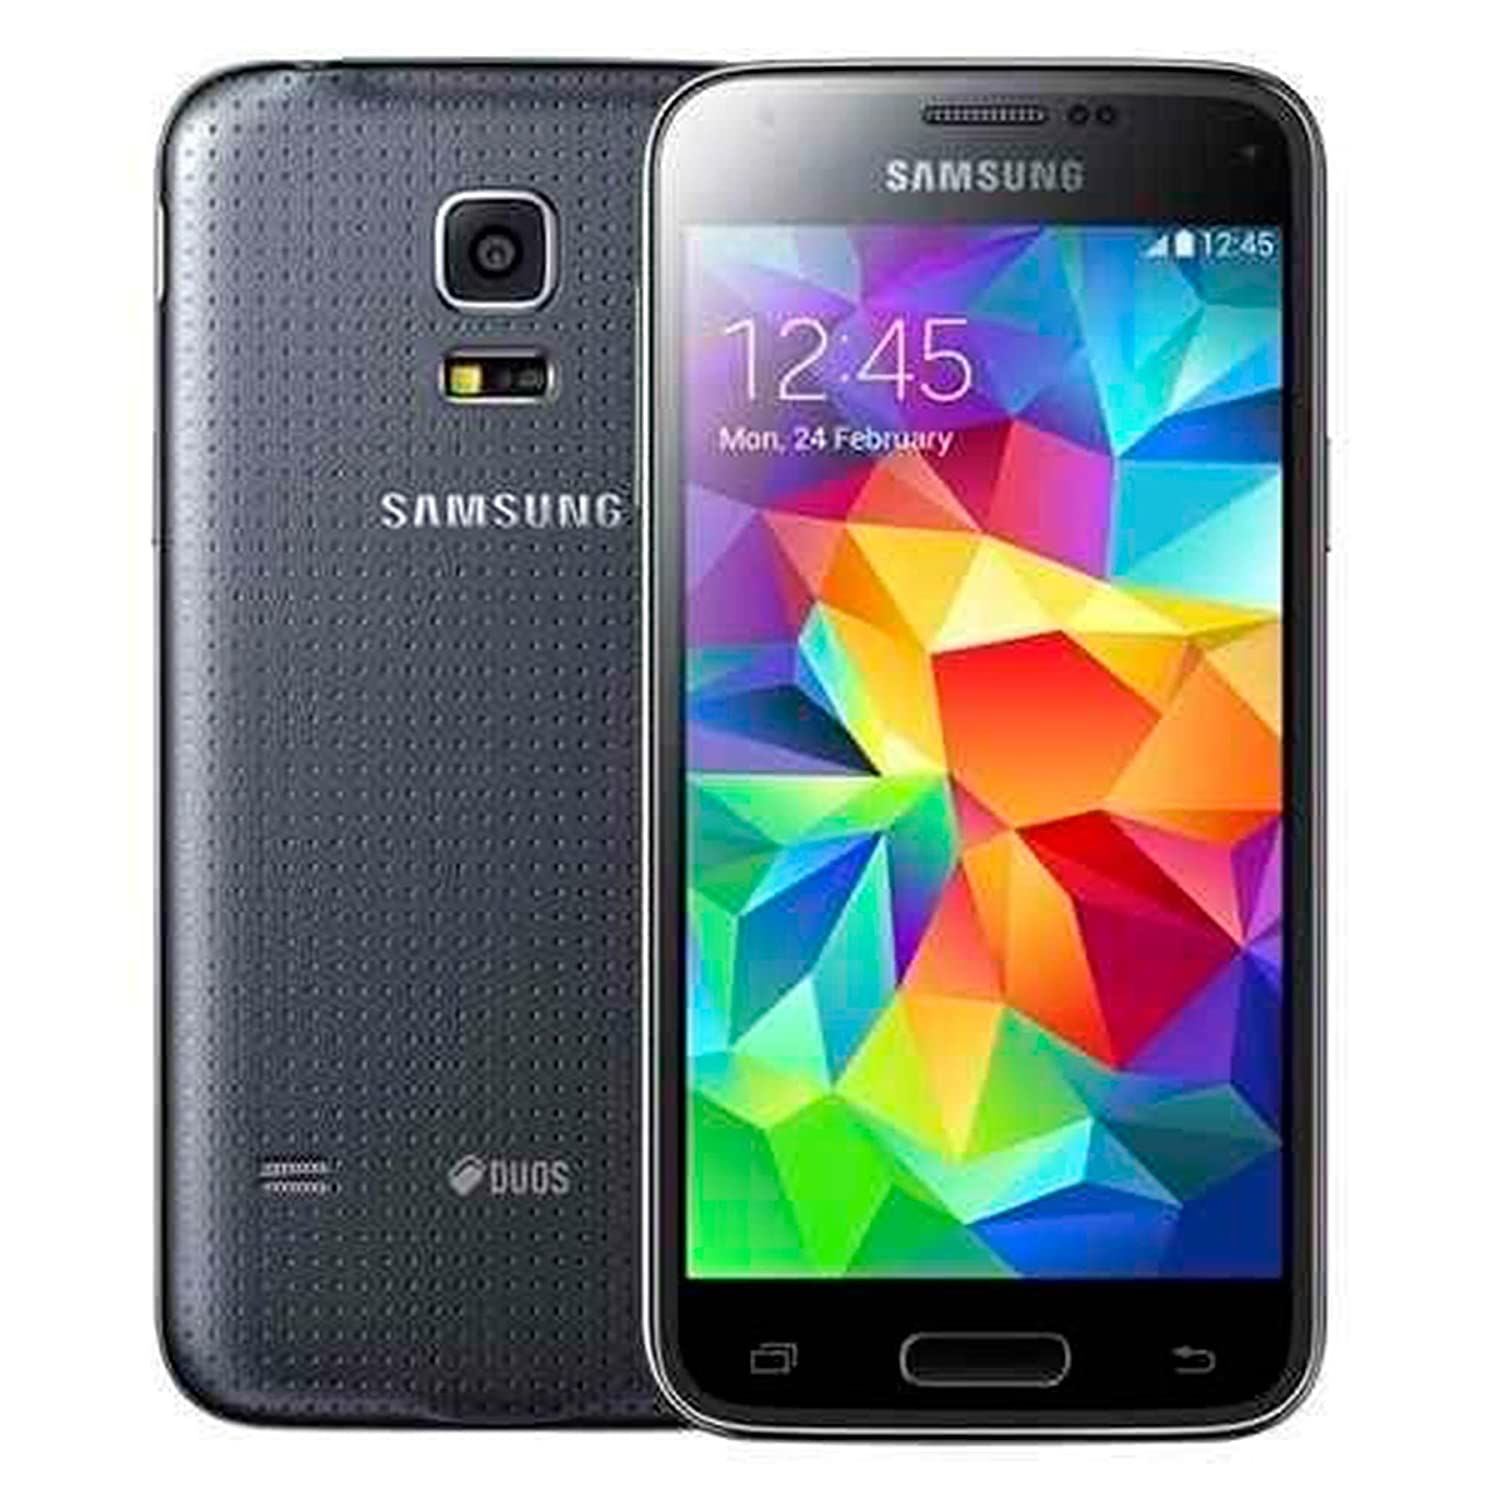 Samsung Galaxy S5 Mini G800H Unlocked Cellphone, International Version, 16GB, Black